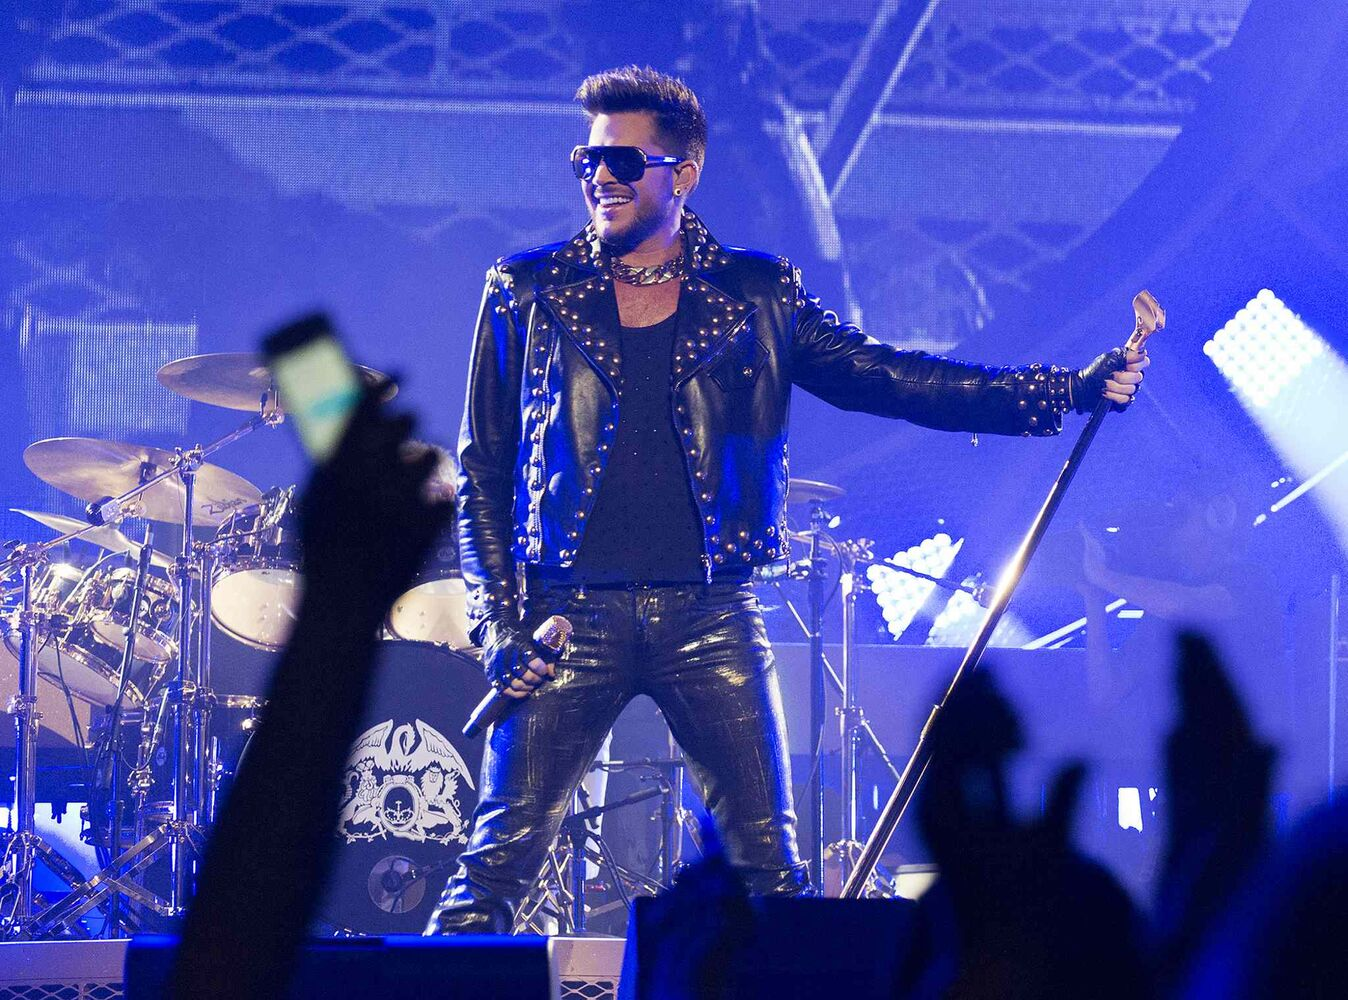 Adam Lambert and Queen kept the audience rapt during Saturday night's performance, coinciding with the first full day of summer. (Sarah Taylor / Winnipeg Free Press)